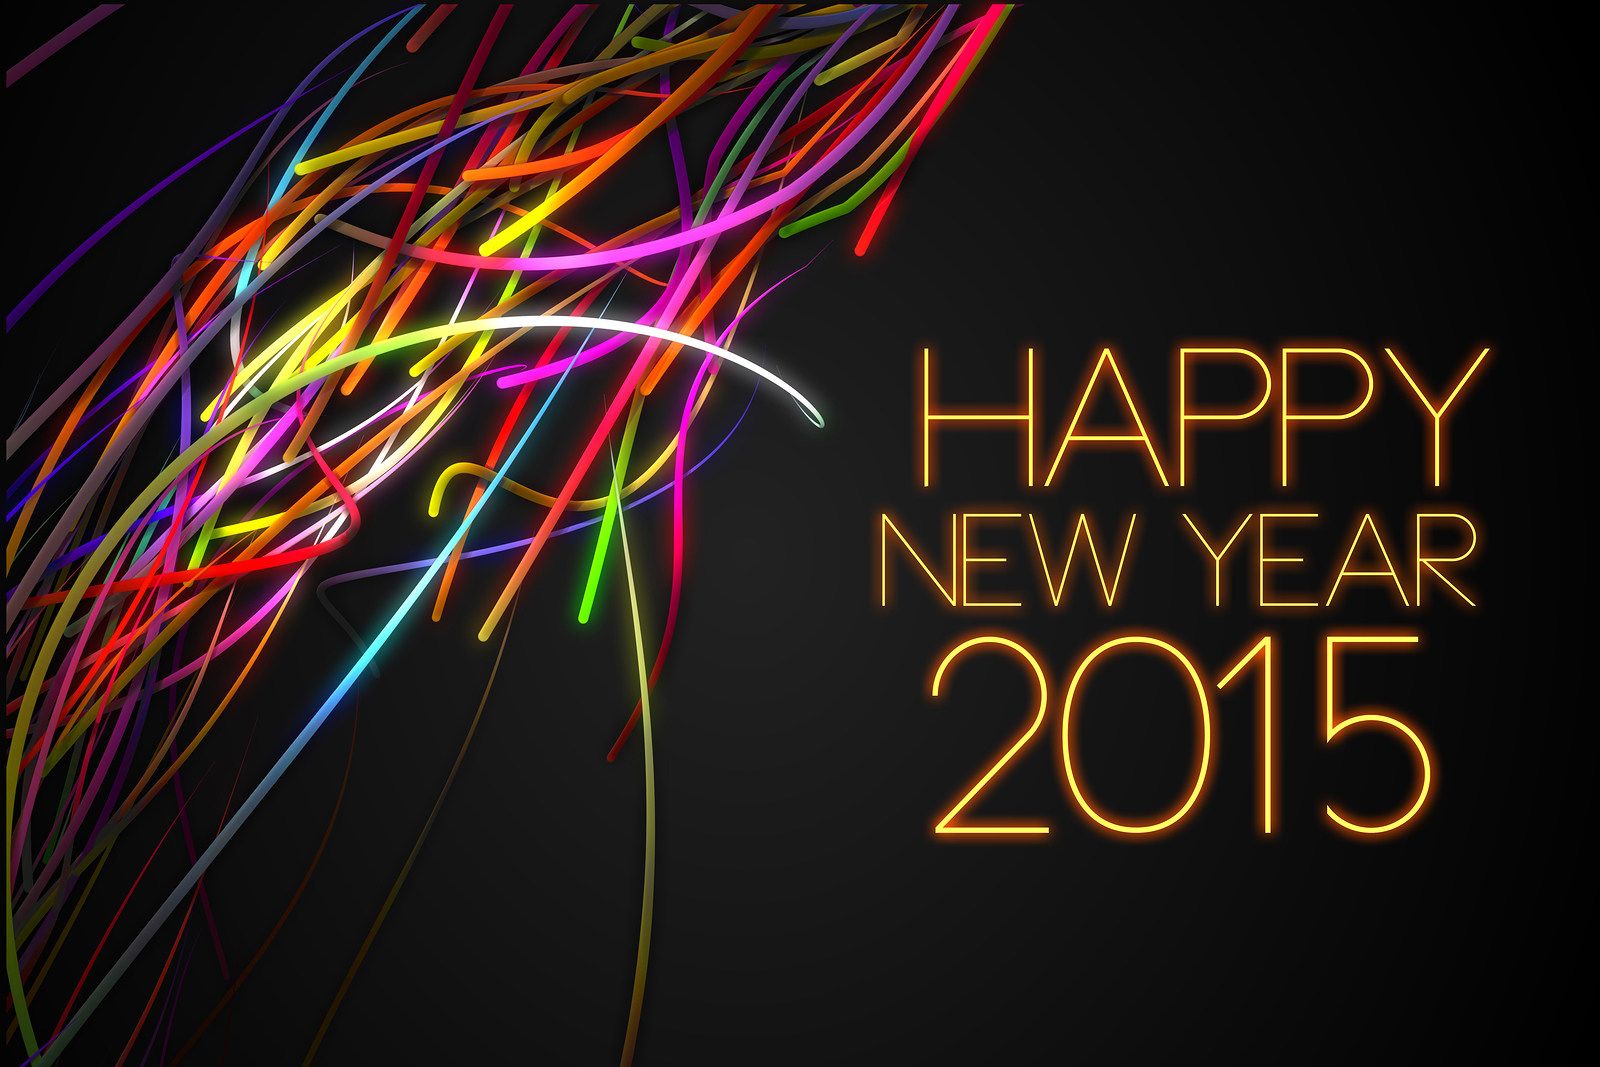 2015 happy new year highmore pr image